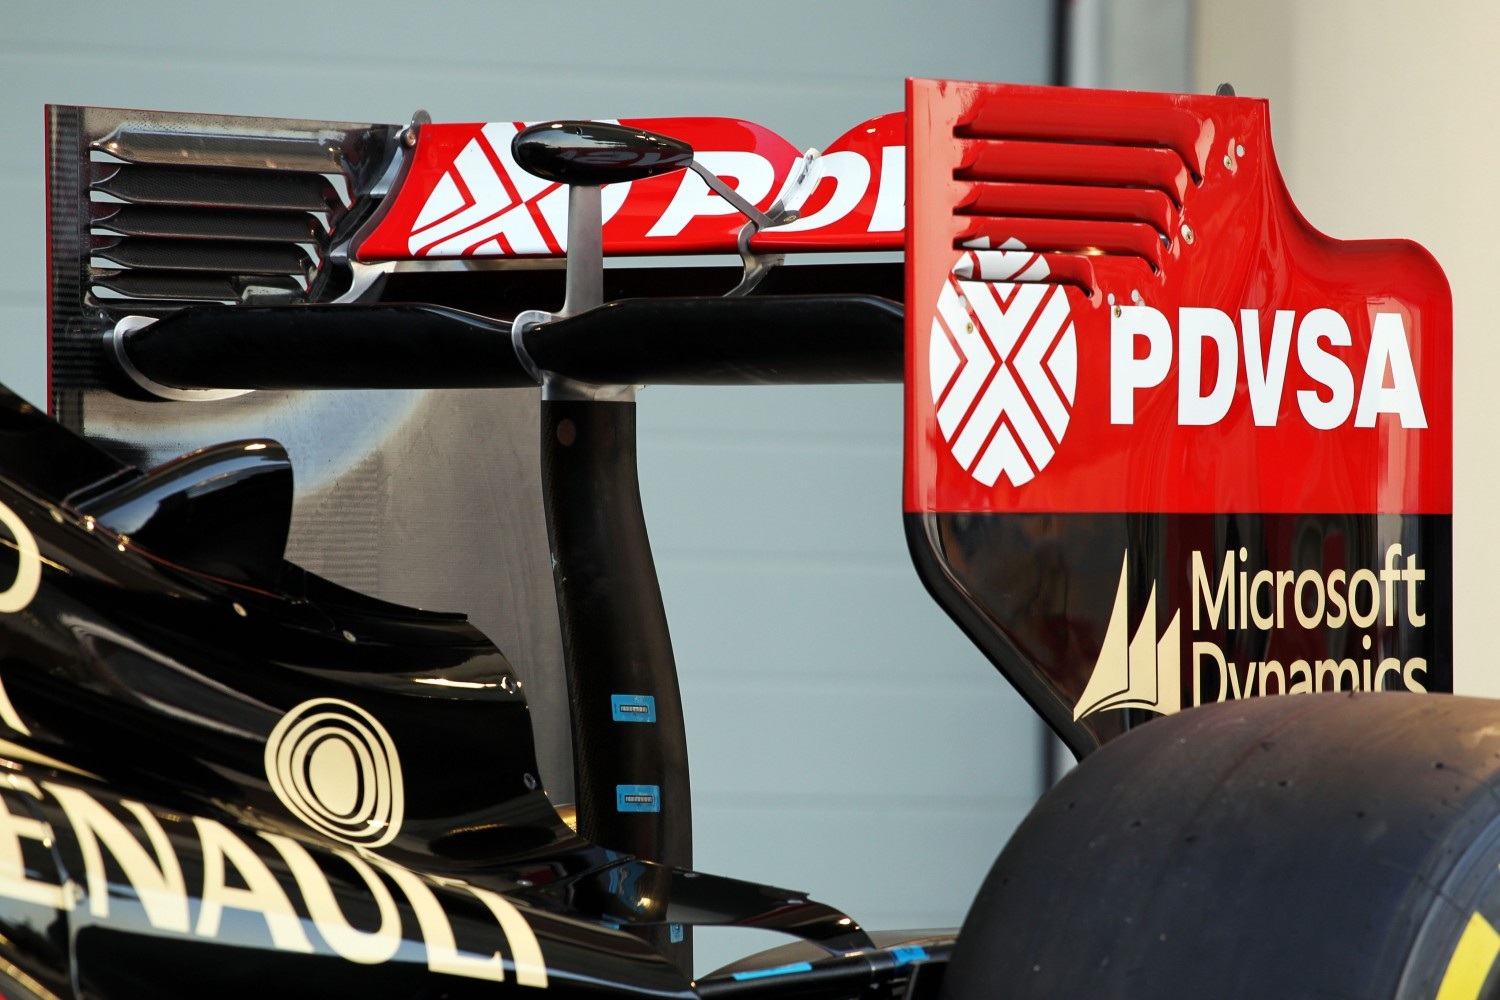 Formula One Winter Testing, Bahrain International Circuit, Sakhir, Bahrain, Thursday 20 February 2014 - The Lotus F1 E22 is officially unveiled - rear wing detail.